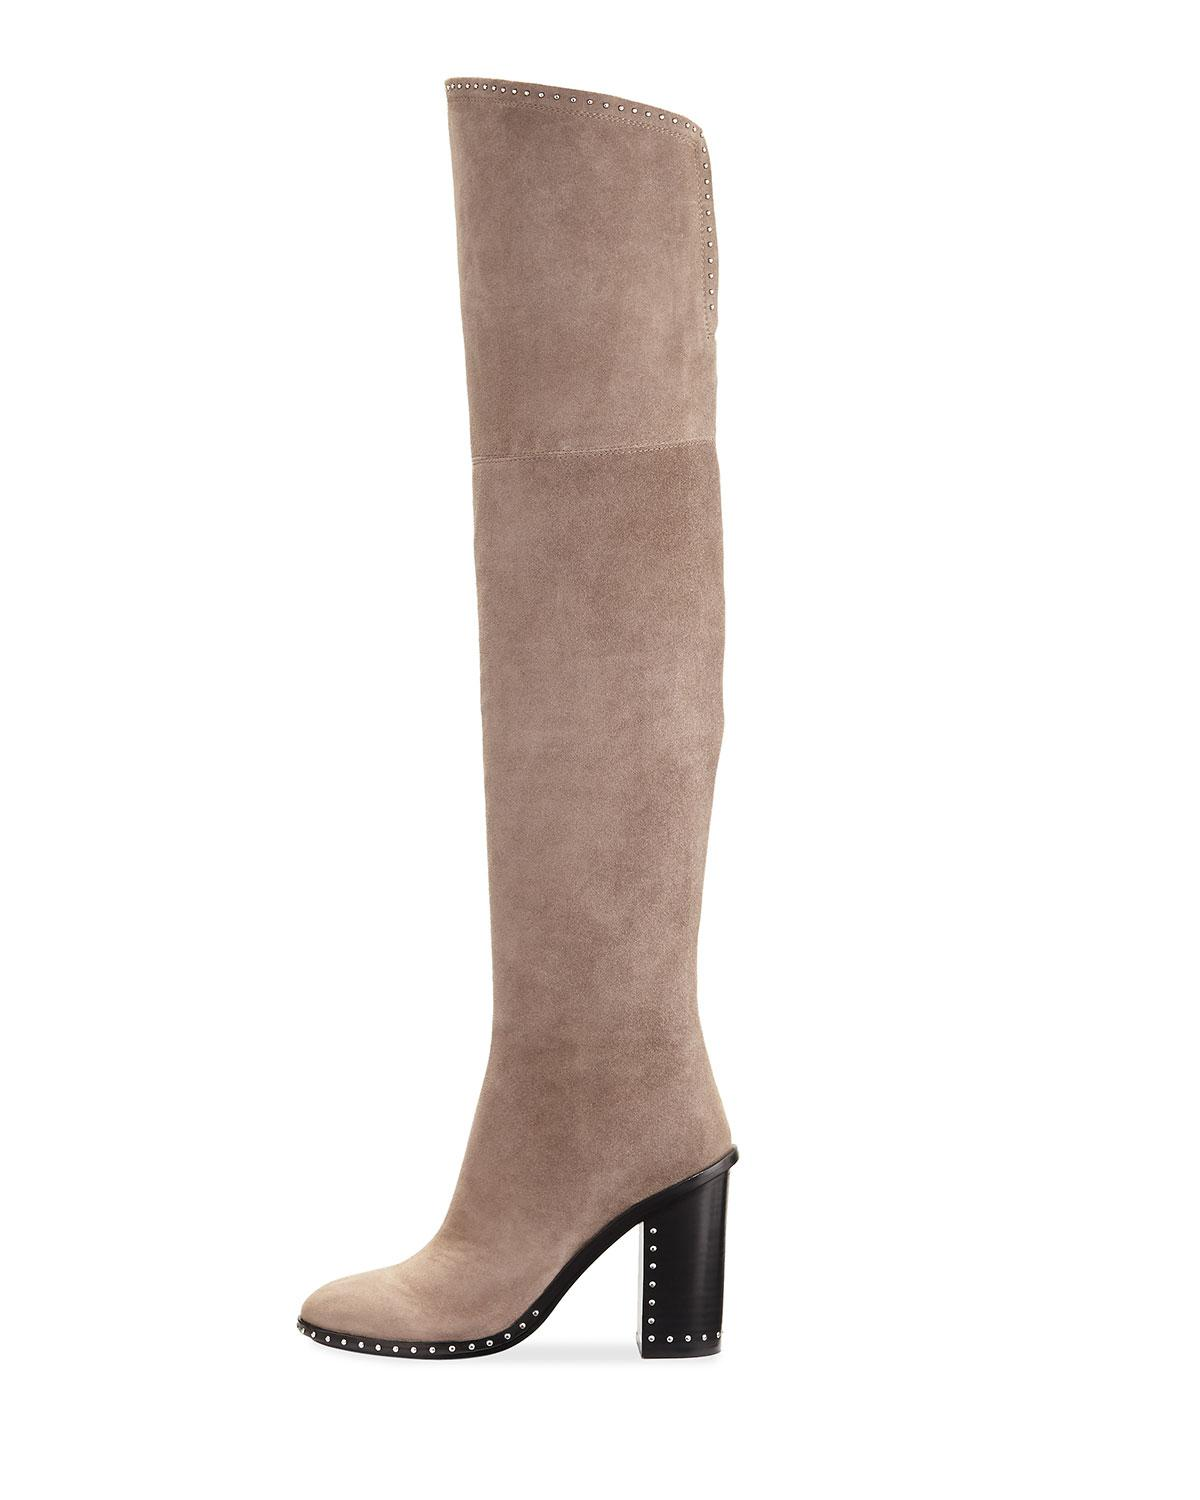 c6f6c2daf86 Lyst - Sigerson Morrison Mars Studded Over-the-knee Boot in Gray